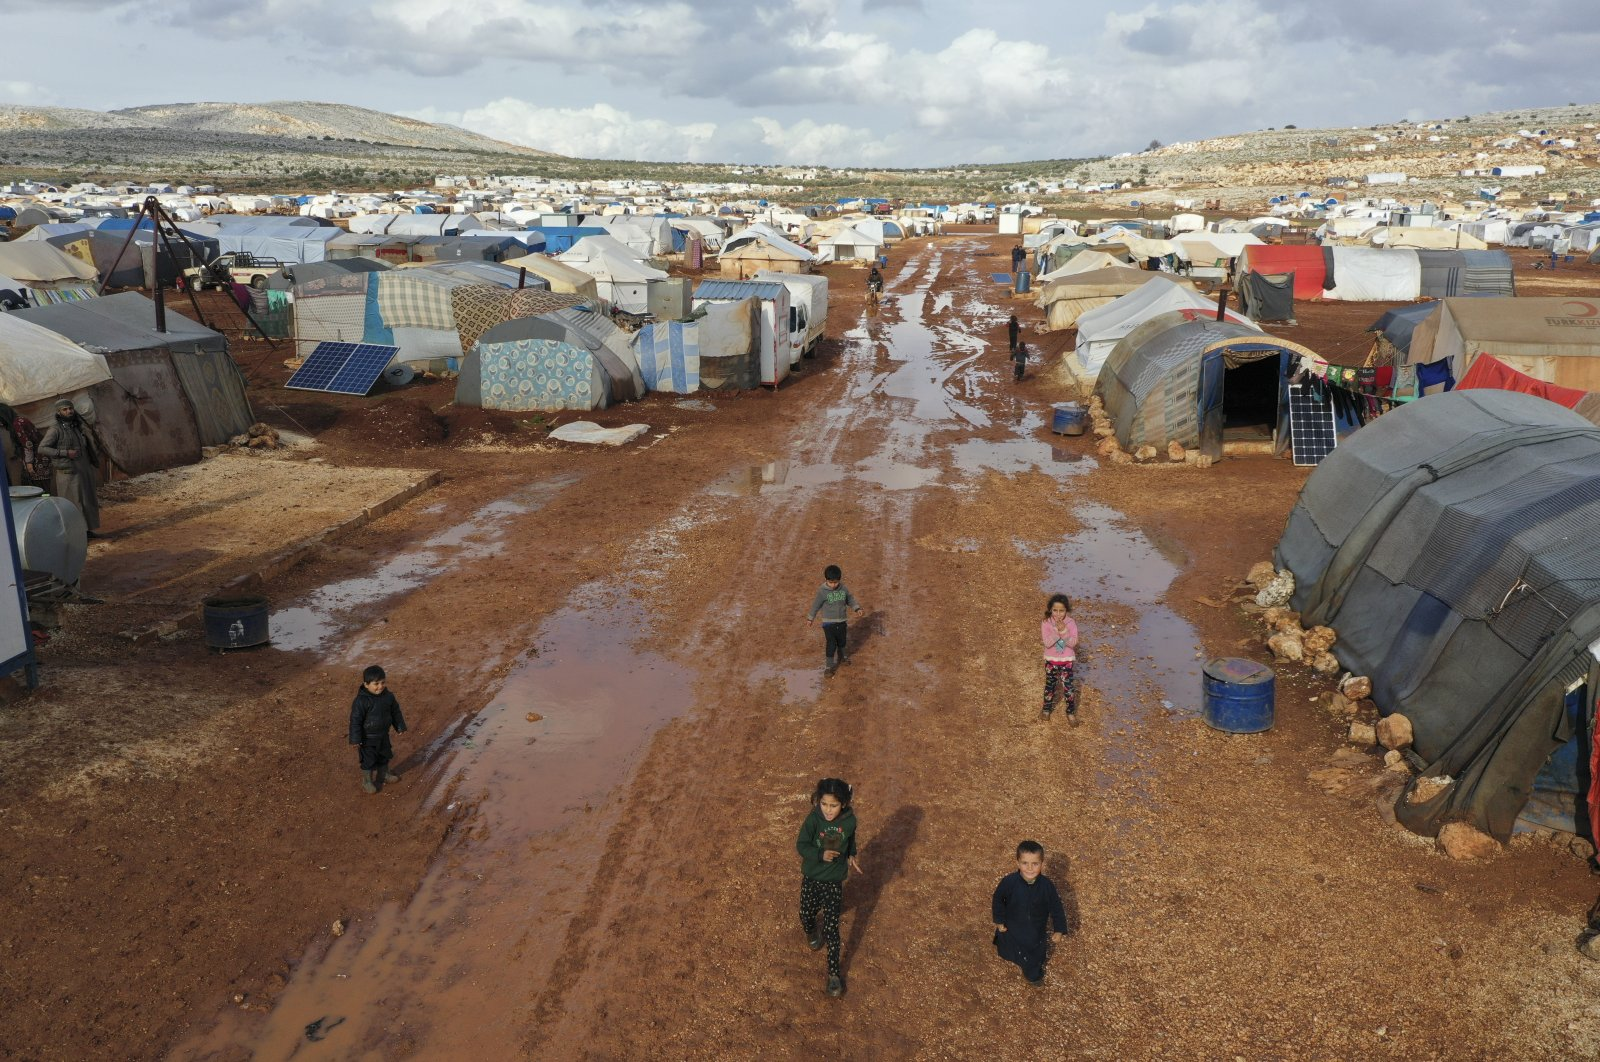 Syrian refugees walk through a camp for the displaced muddied by recent rains near the village of Kafr Aruq, in Idlib province, Syria, Jan. 28, 2021. (AP Photo)